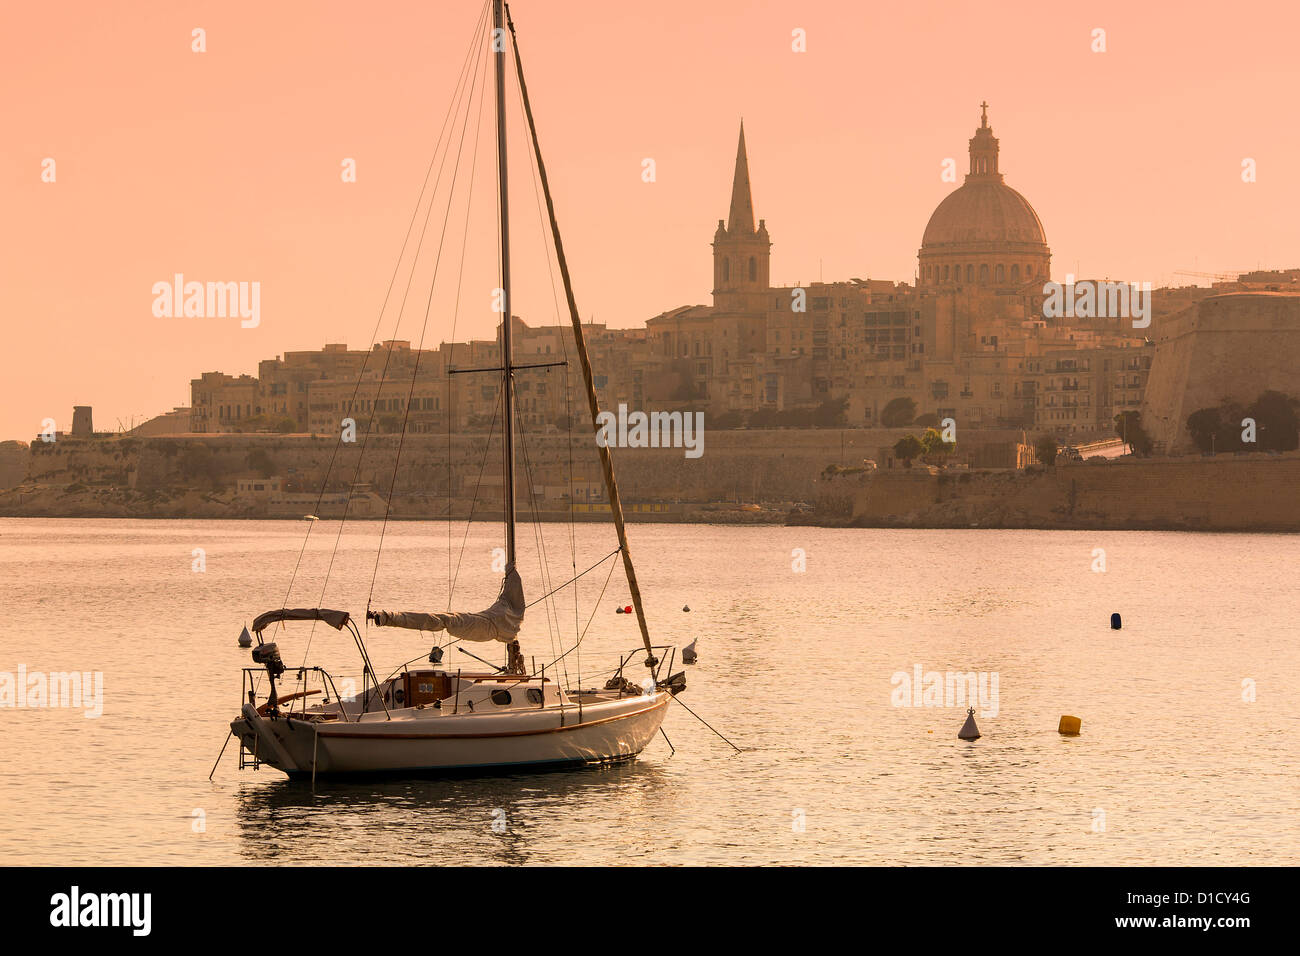 Malta, Skyline of Valletta - Stock Image